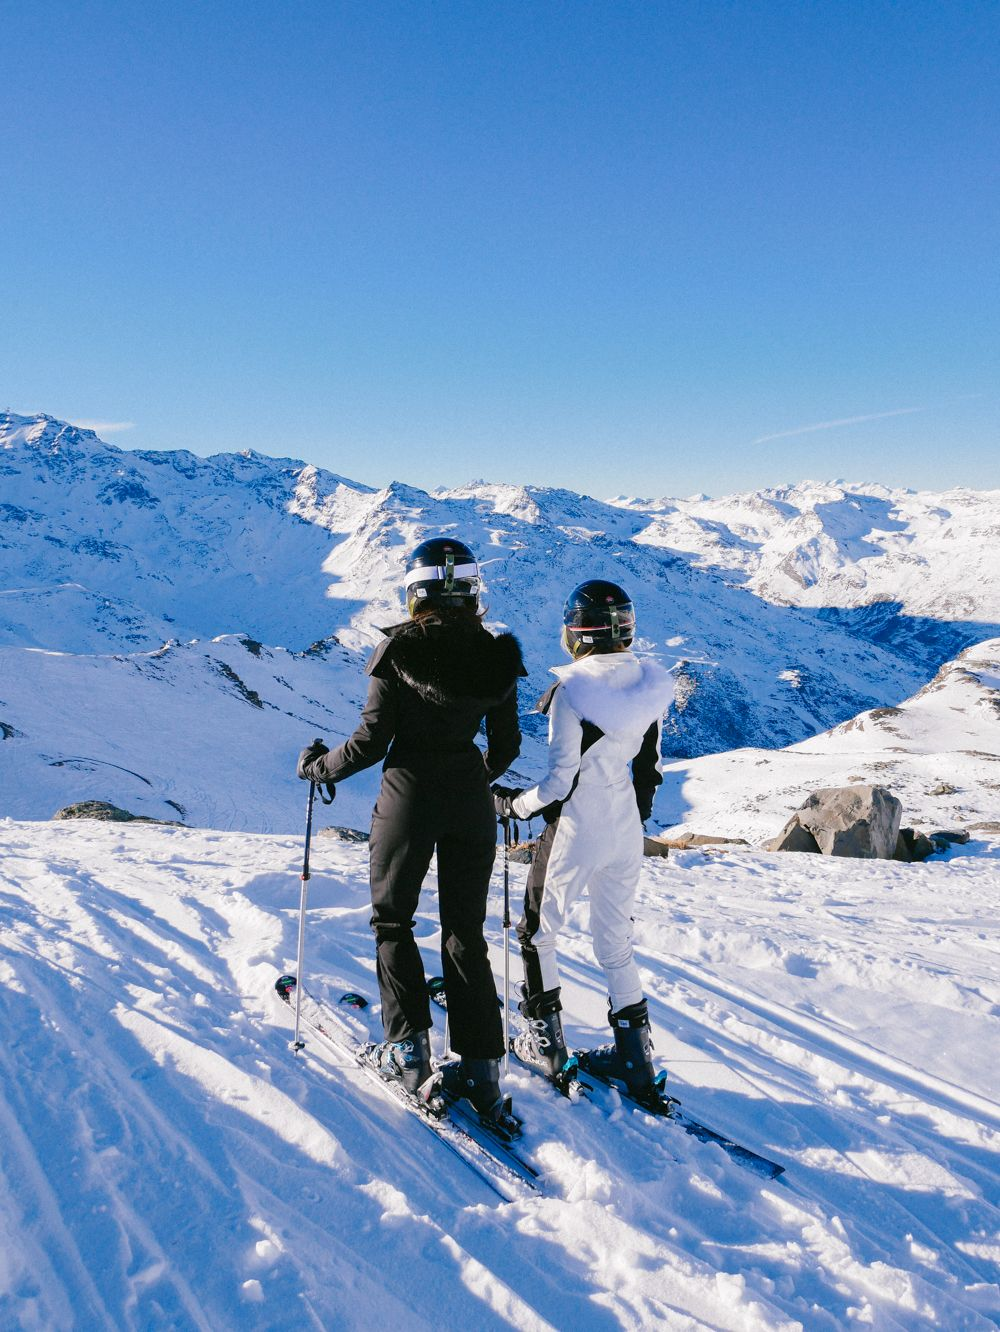 First Day Skiing, Val Thorens - The Londoner